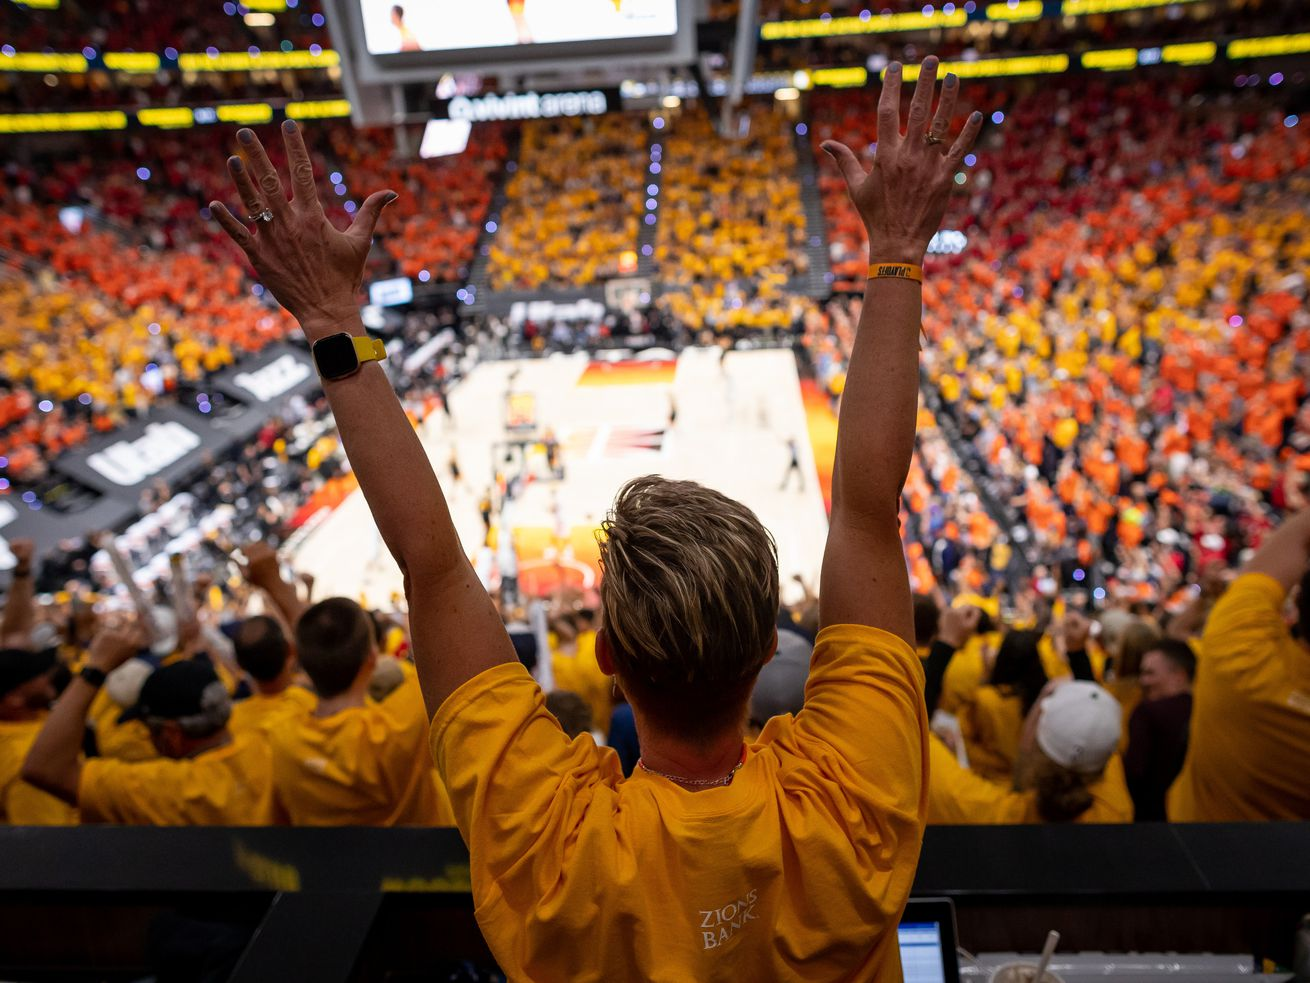 Utah Jazz mailbag: What made this season so special? Jazz fans share their favorite personal moments